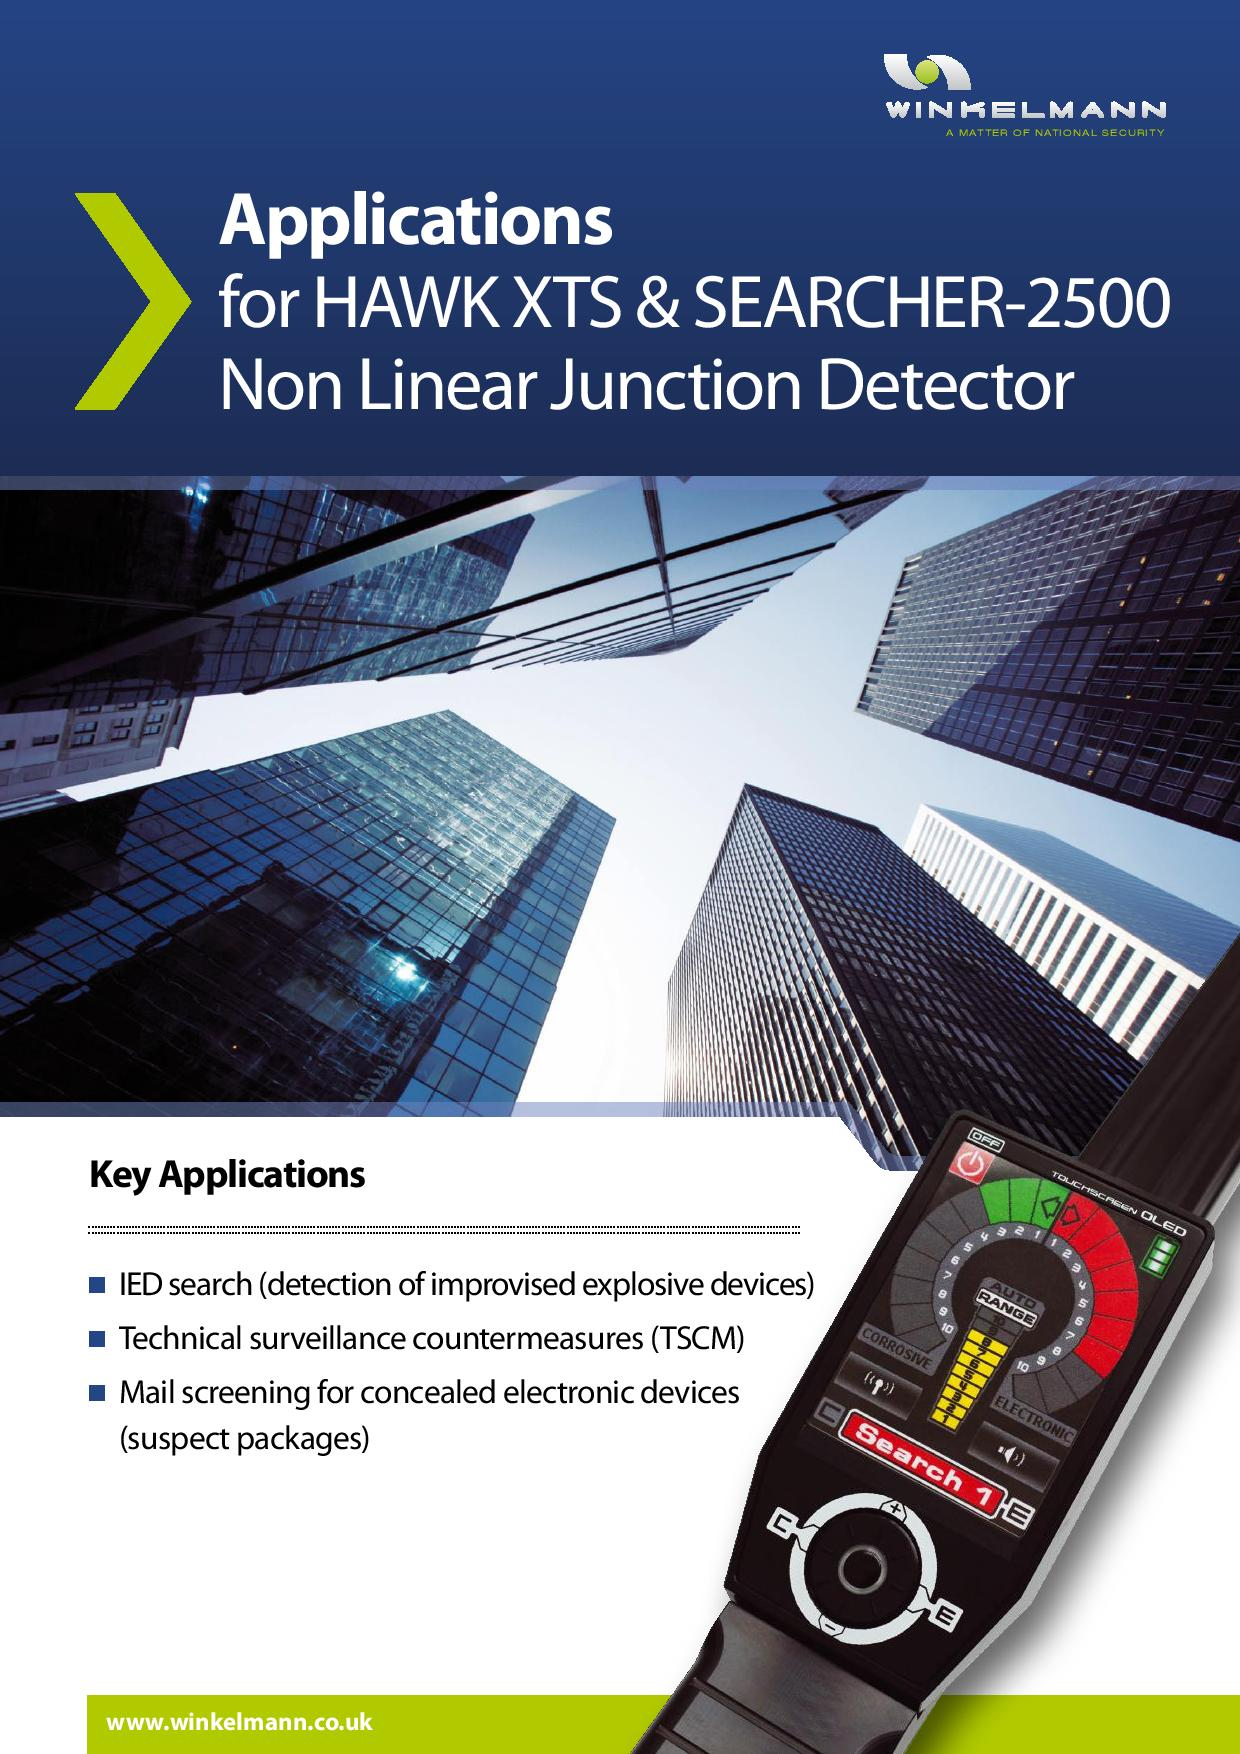 Applications for HAWK XTS & SEARCHER-2500 Non Linear Junction Detector